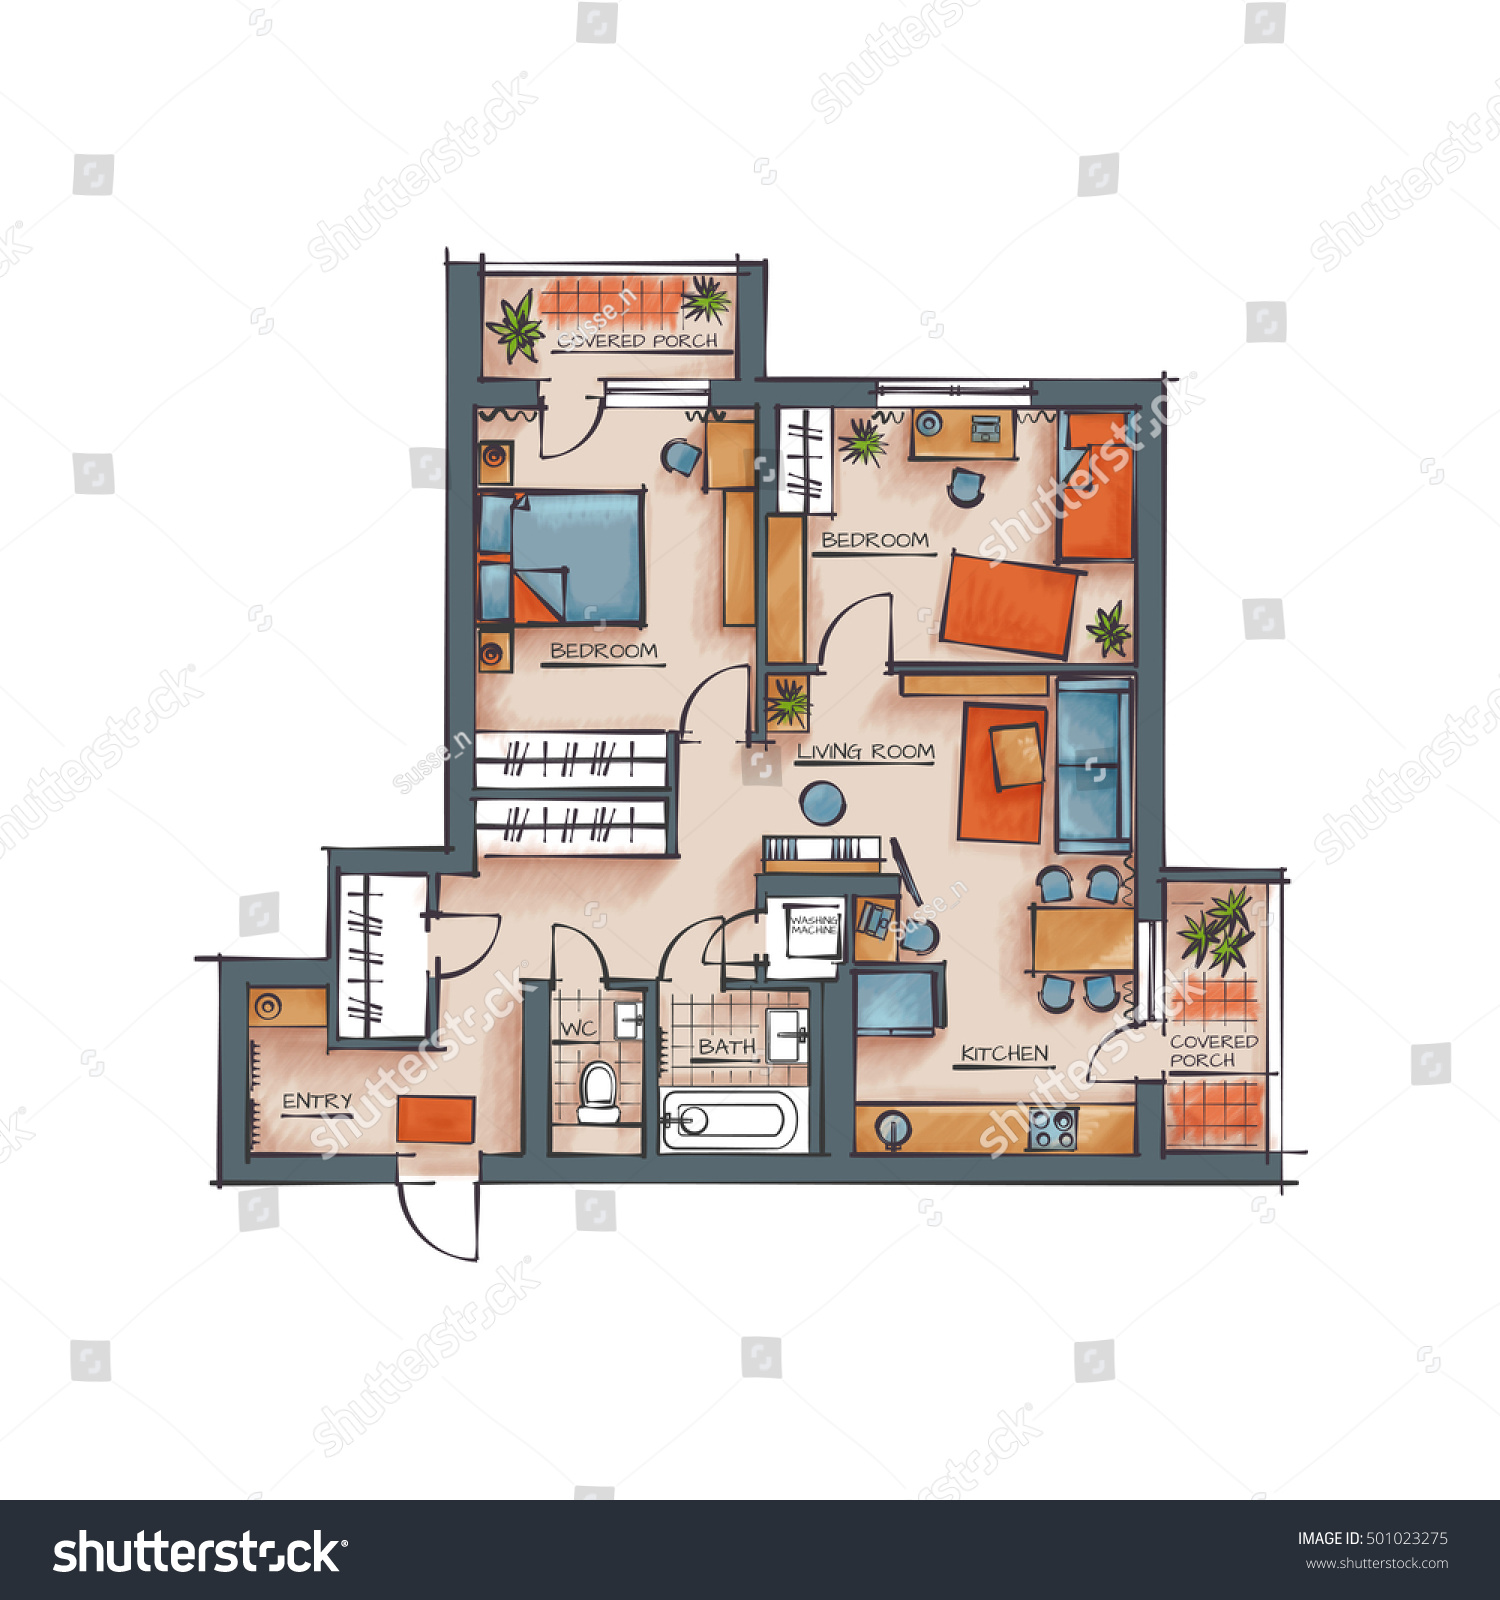 Architectural Color Floor Plan. Two Bedrooms Studio Apartment. Hand Drawn Style Rendering